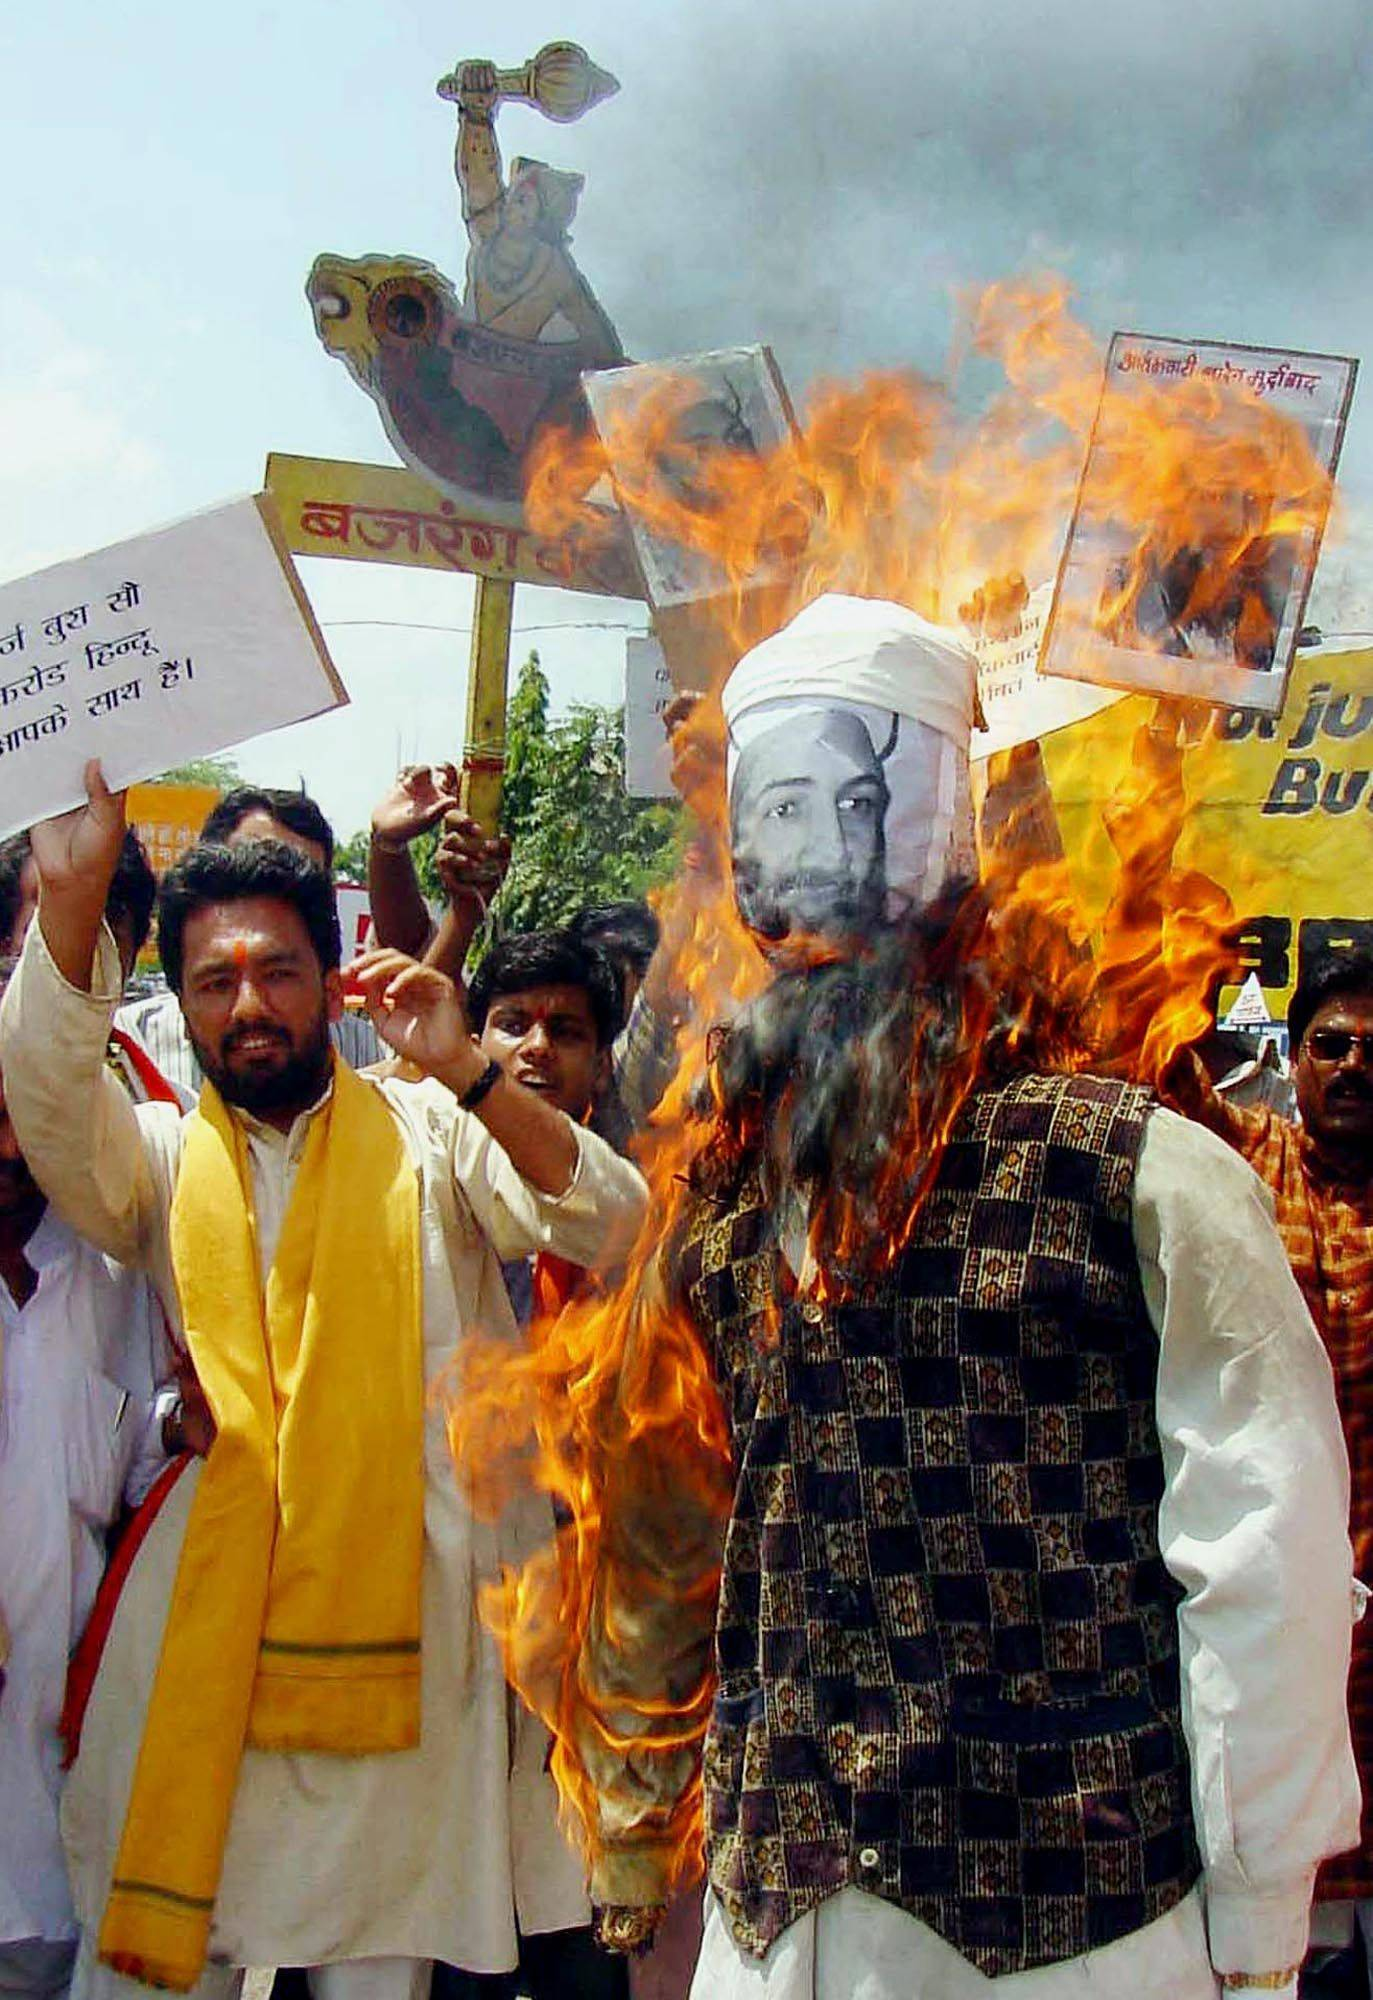 Activists of Bajrang Dal, a Hindu fundamentalist party in India, burn an effigy of Osama bin Laden during a protest against the terrorist attacks on the United States on Sept. 13, 2001.